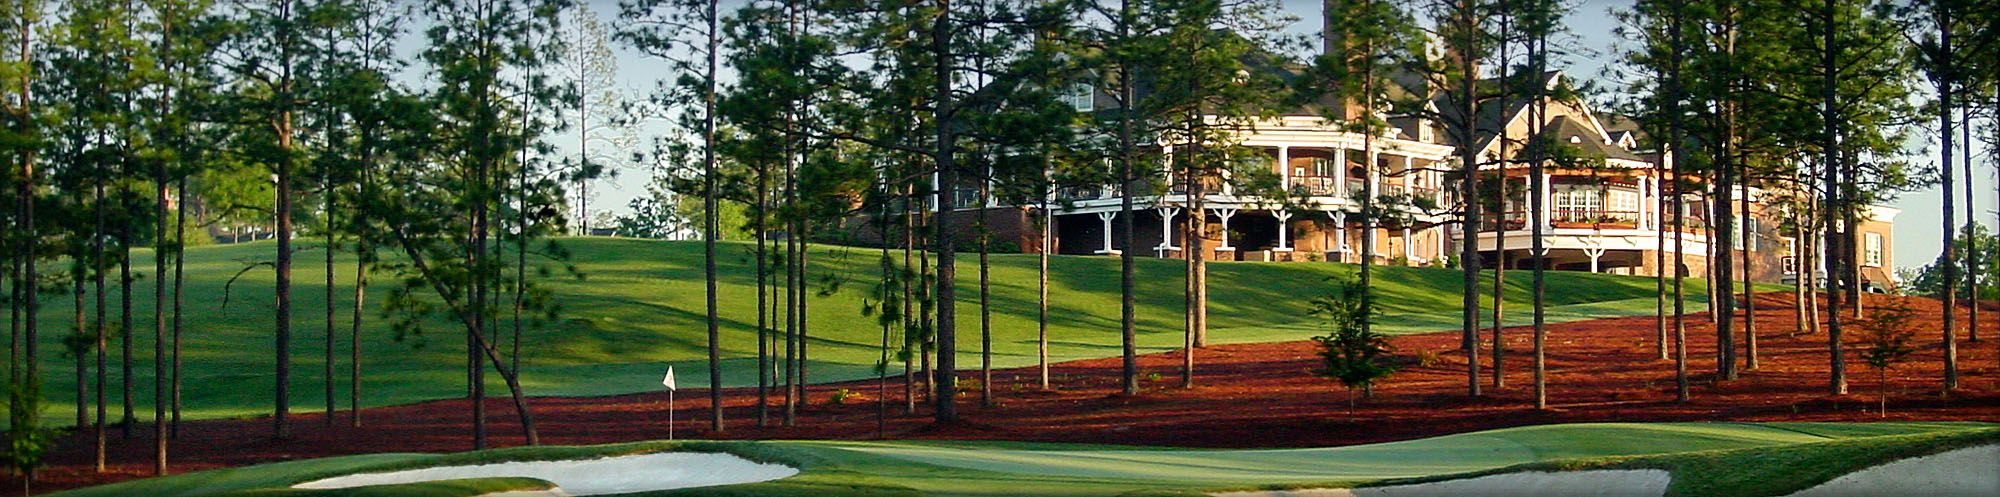 South carolina golf courses sage valley golf club for Sage valley